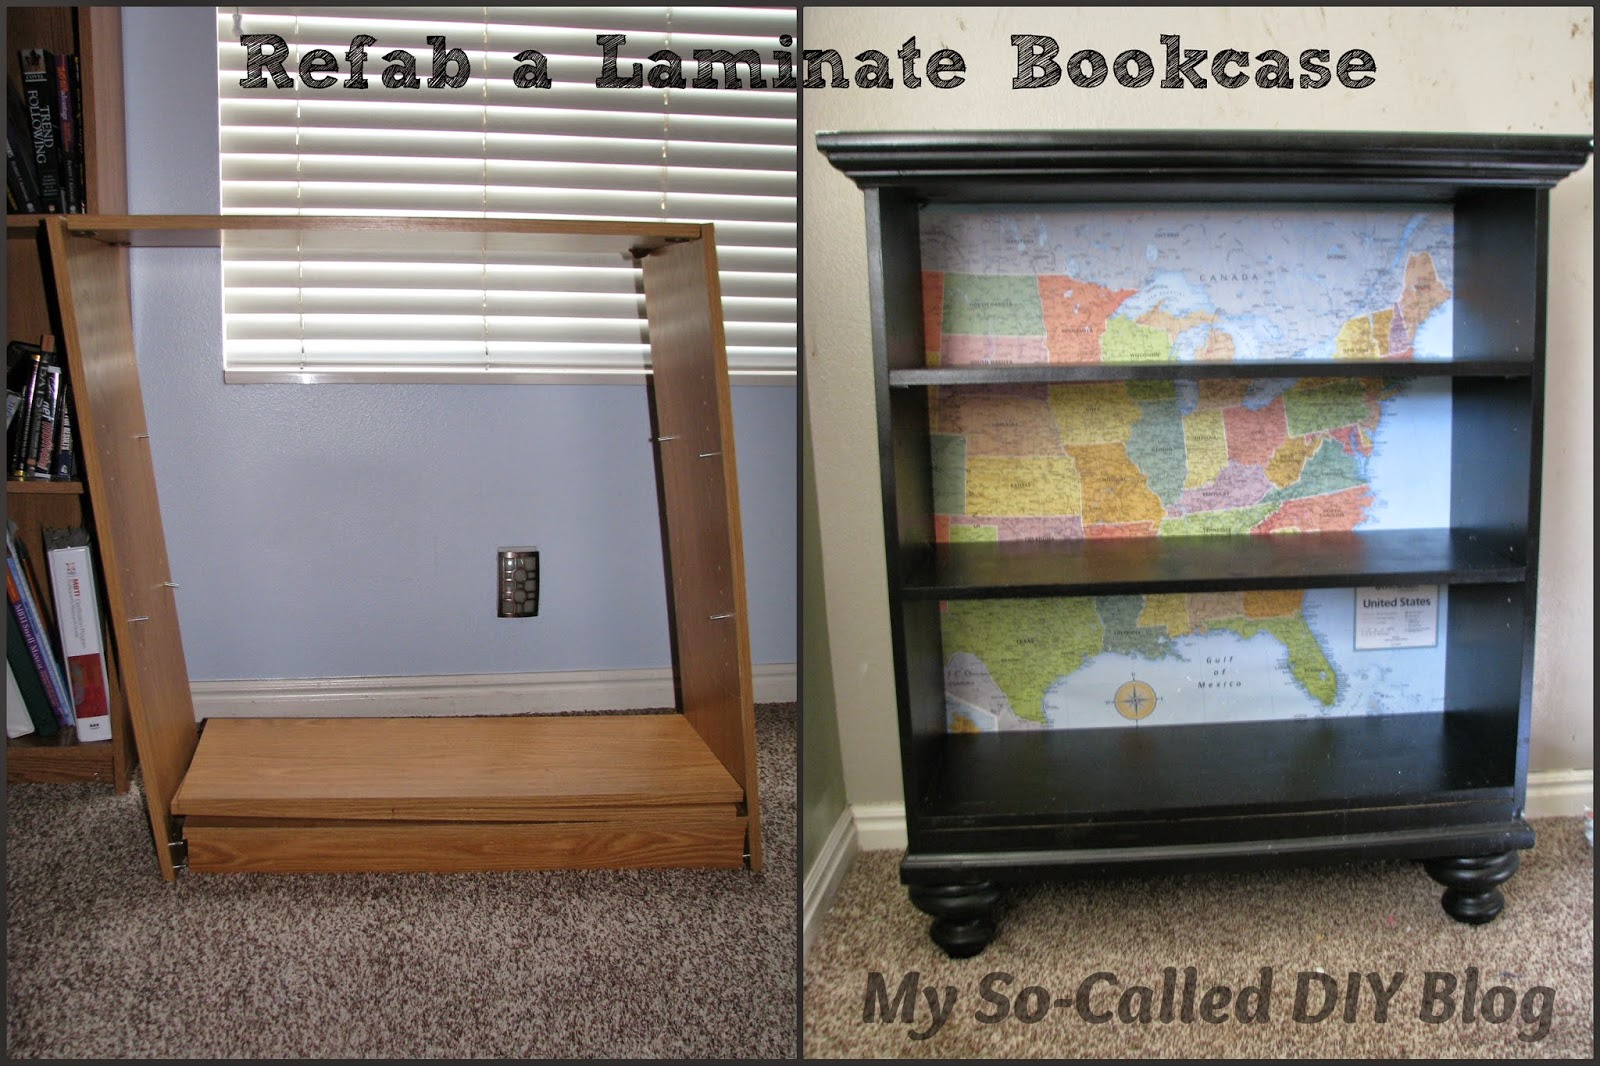 http://www.mysocalleddiyblog.com/2014/07/refab-old-laminate-book-shelf_19.html